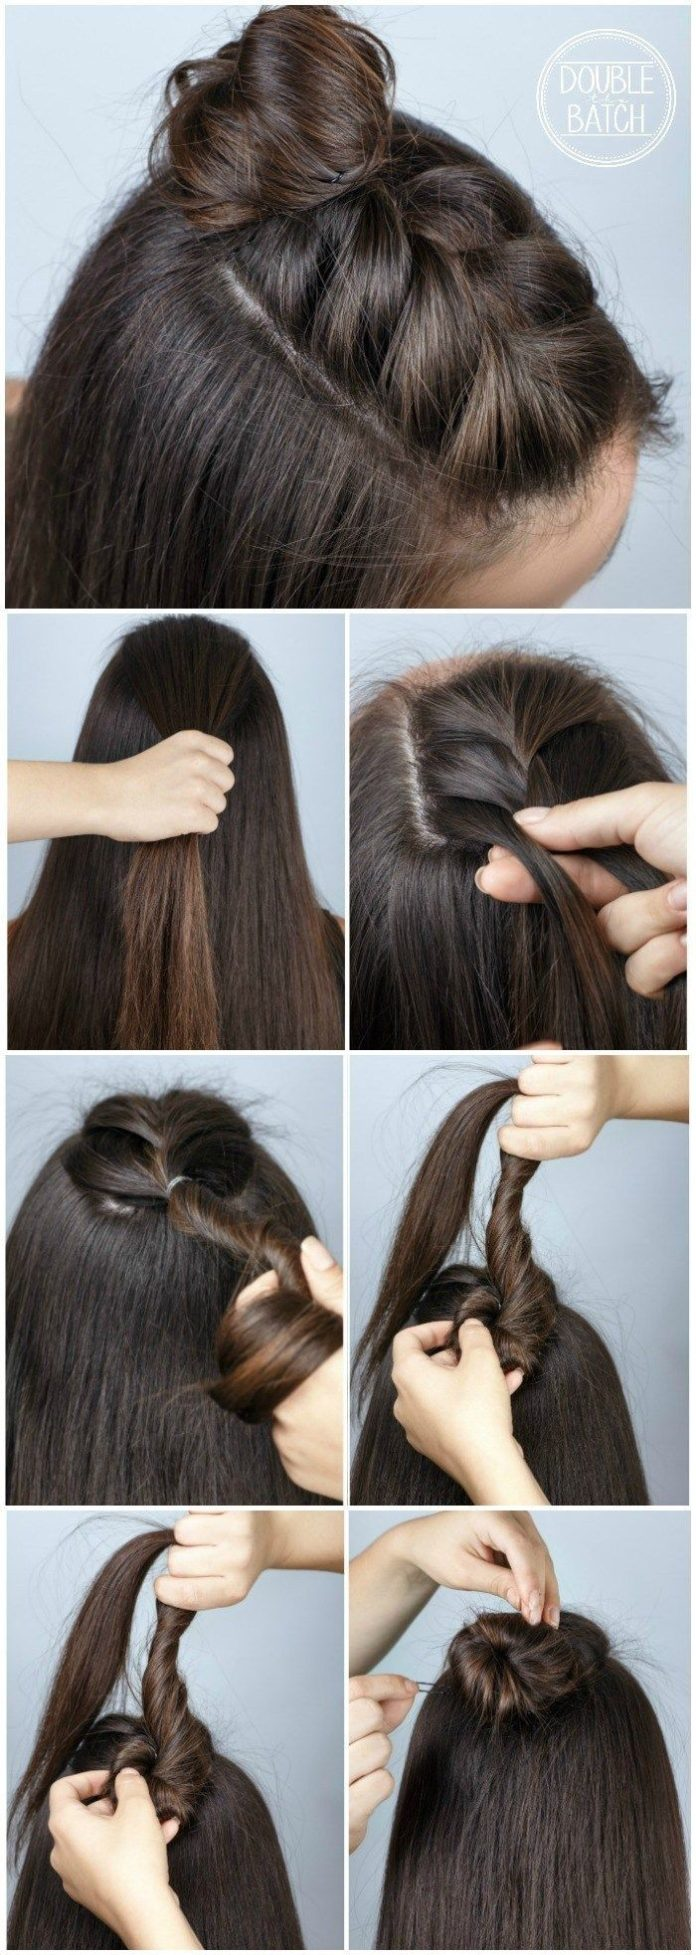 hair easy style ideas easy hair ideas for school braid bun haircut 3616